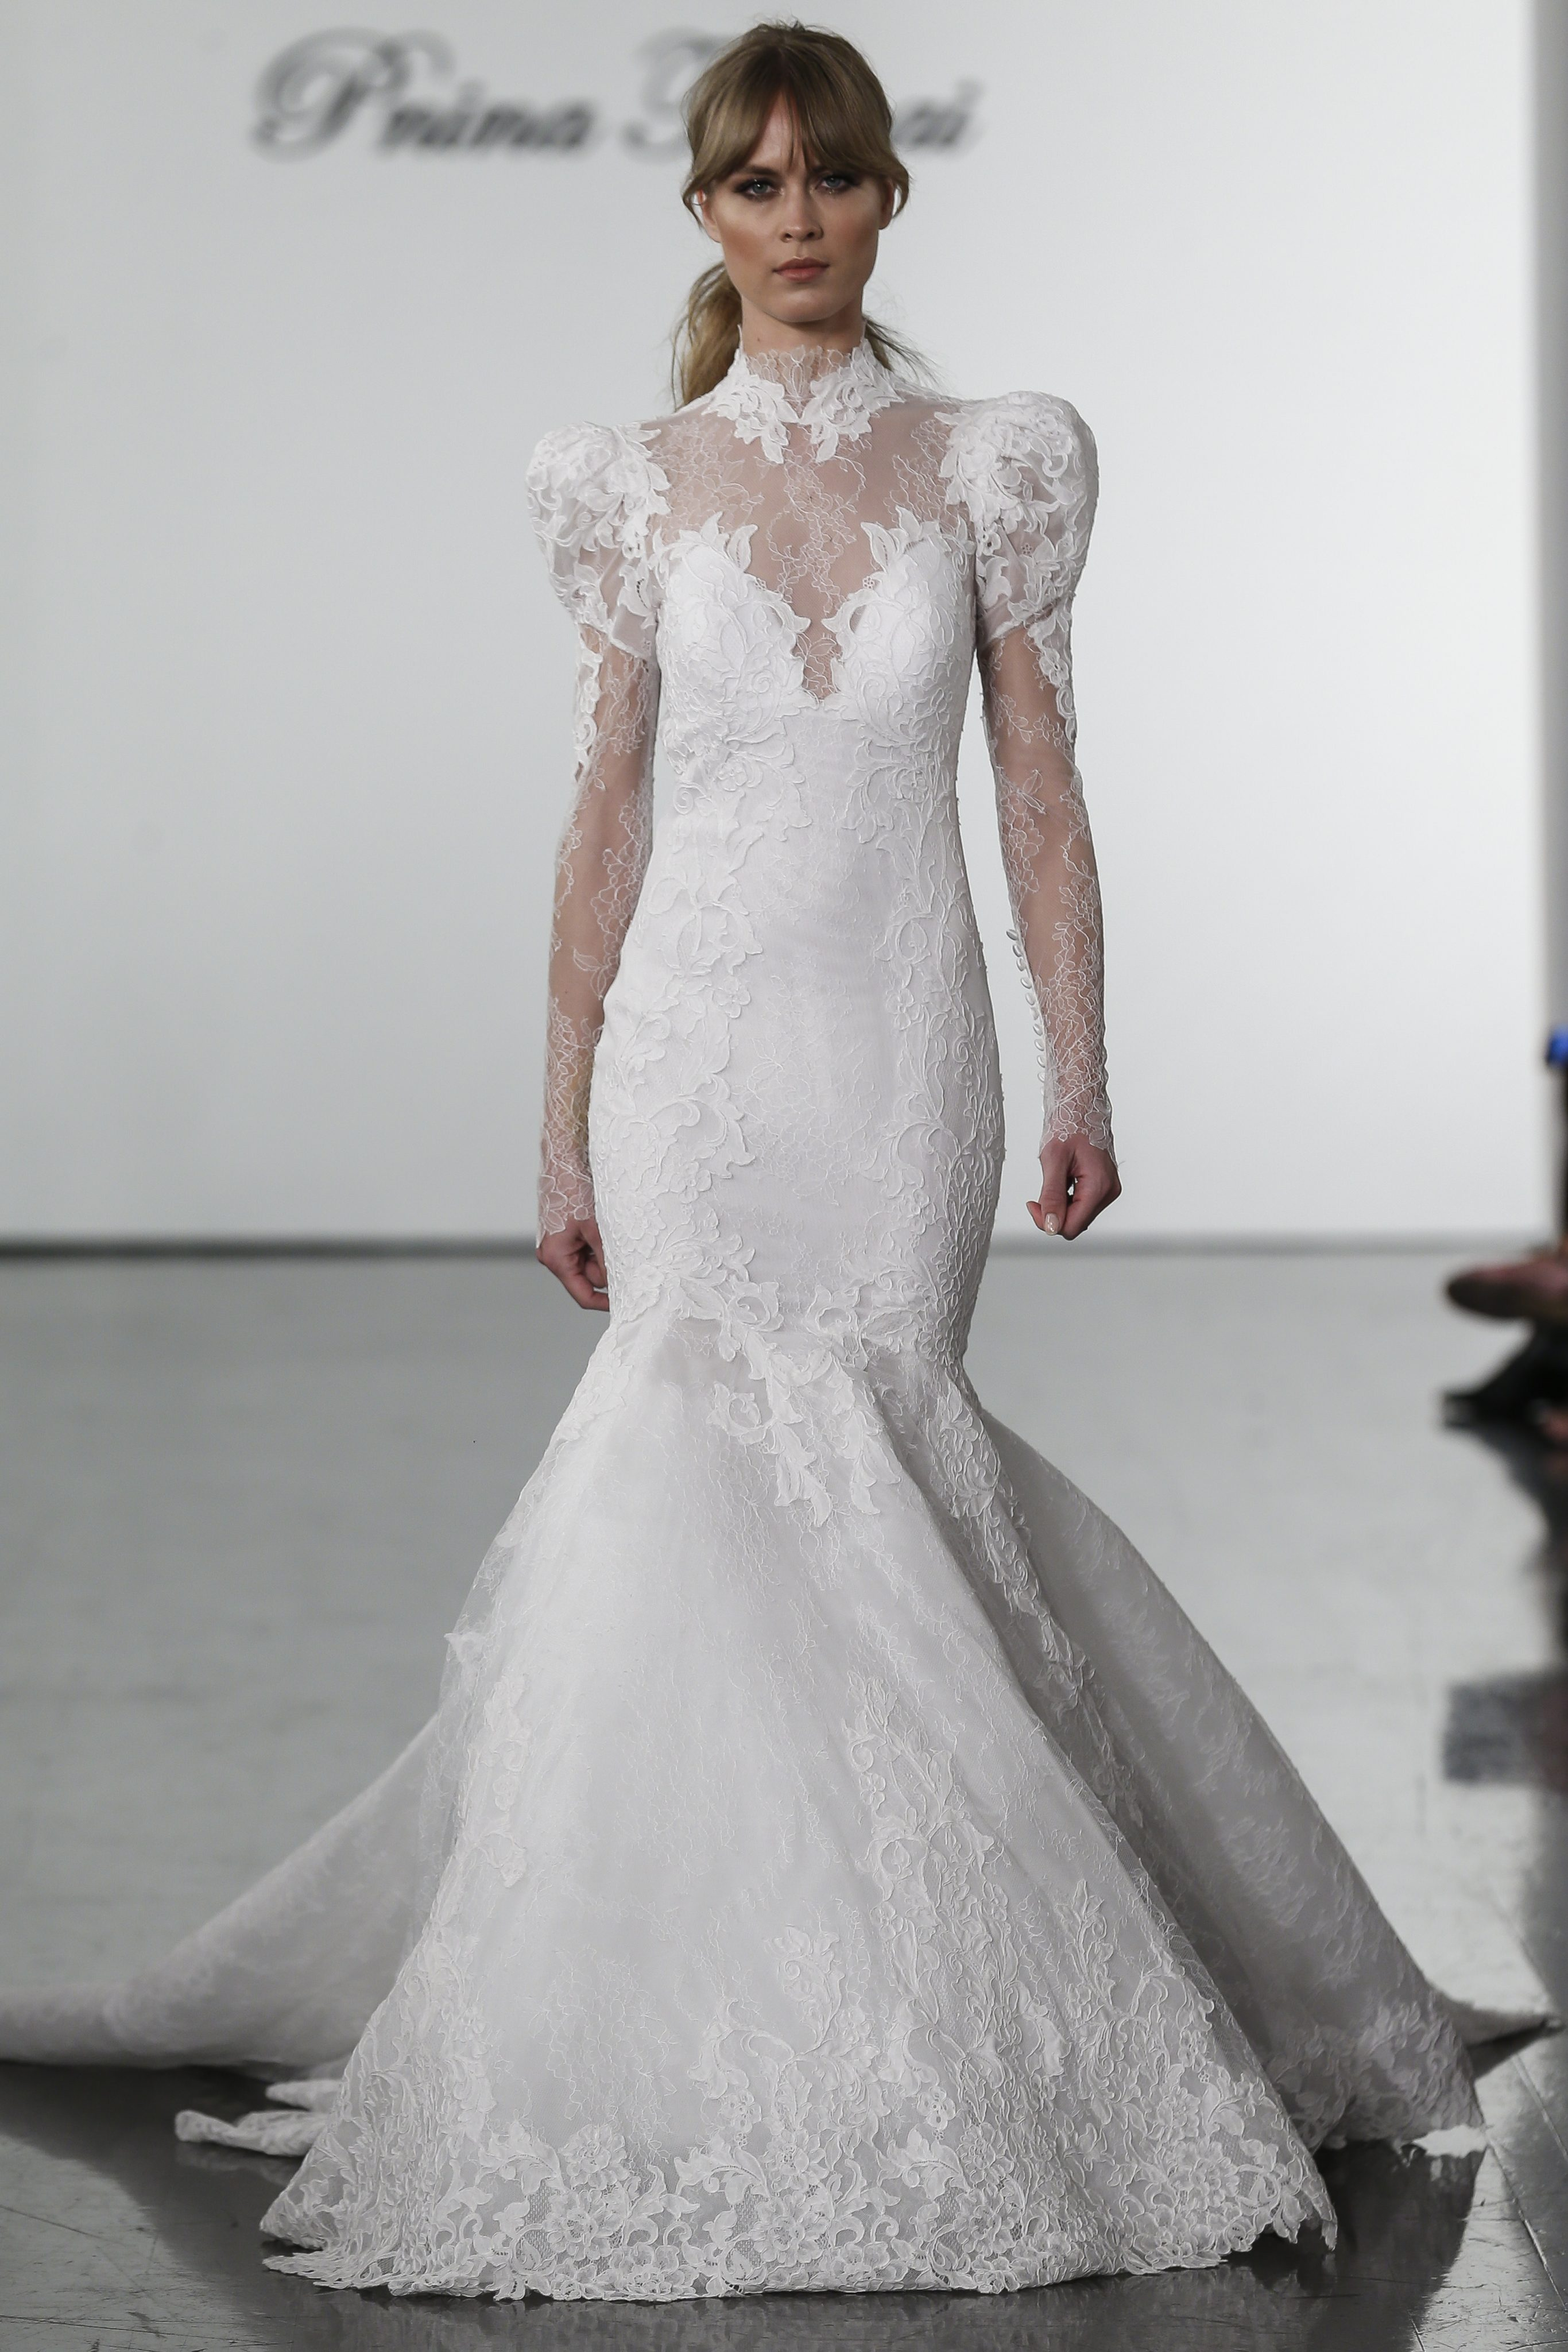 Long Sleeve Lace Mermaid Wedding Dress With High Neck Kleinfeld Bridal